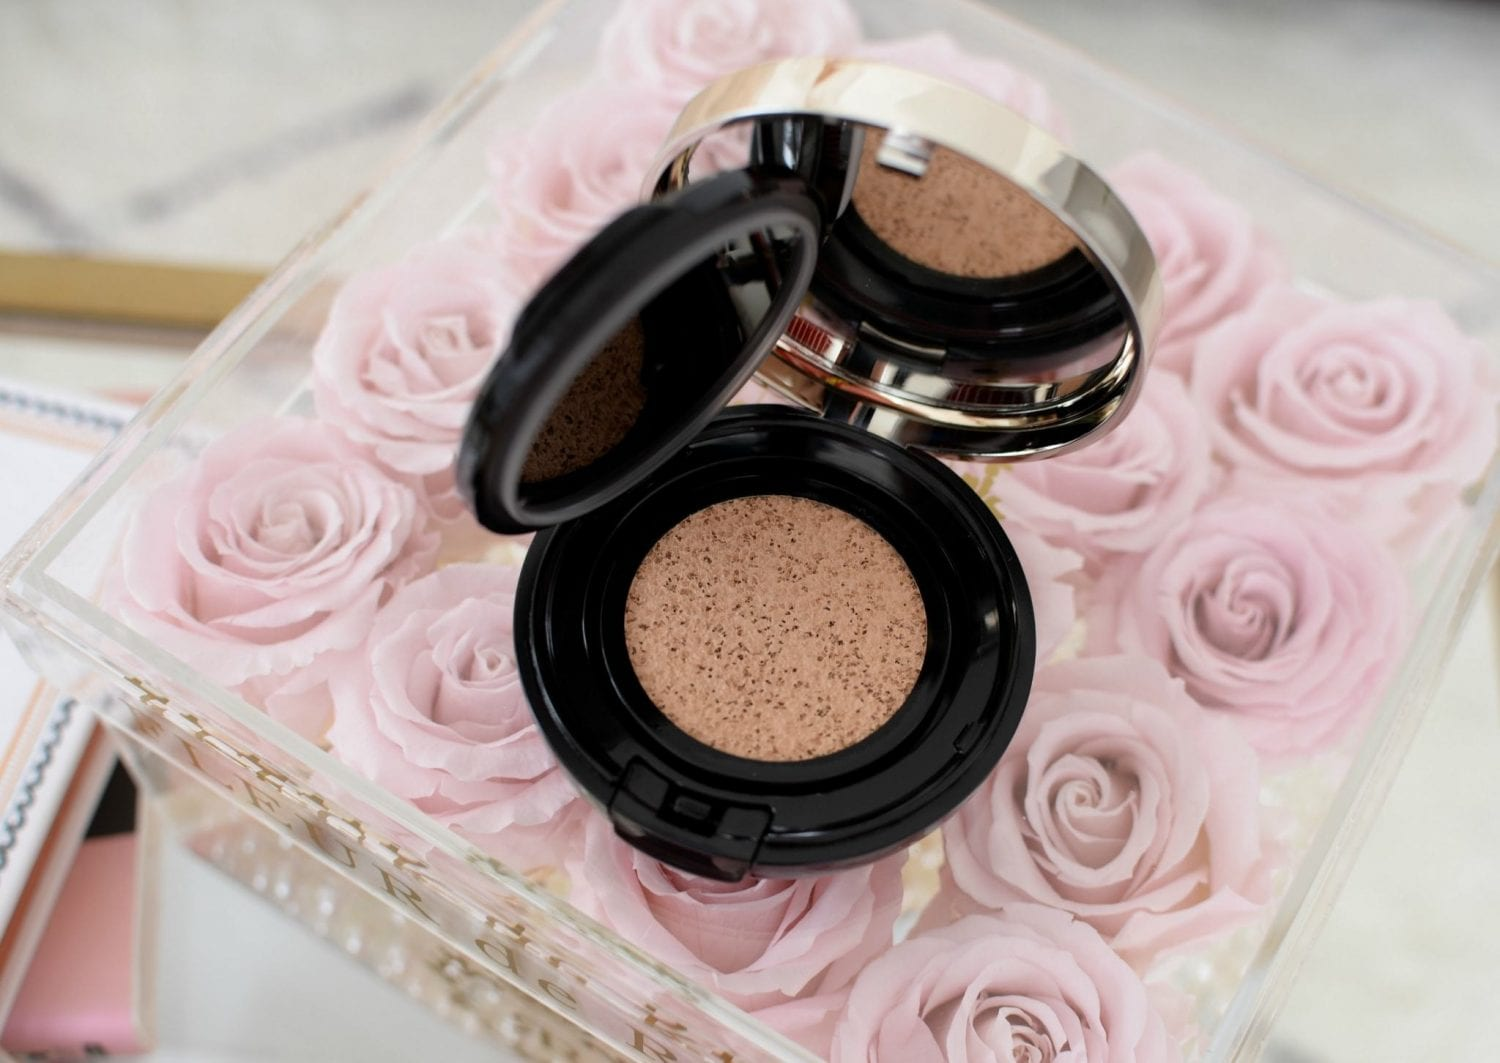 Radiant Cushion Foundation Clé de Peau | The Pink Millennial